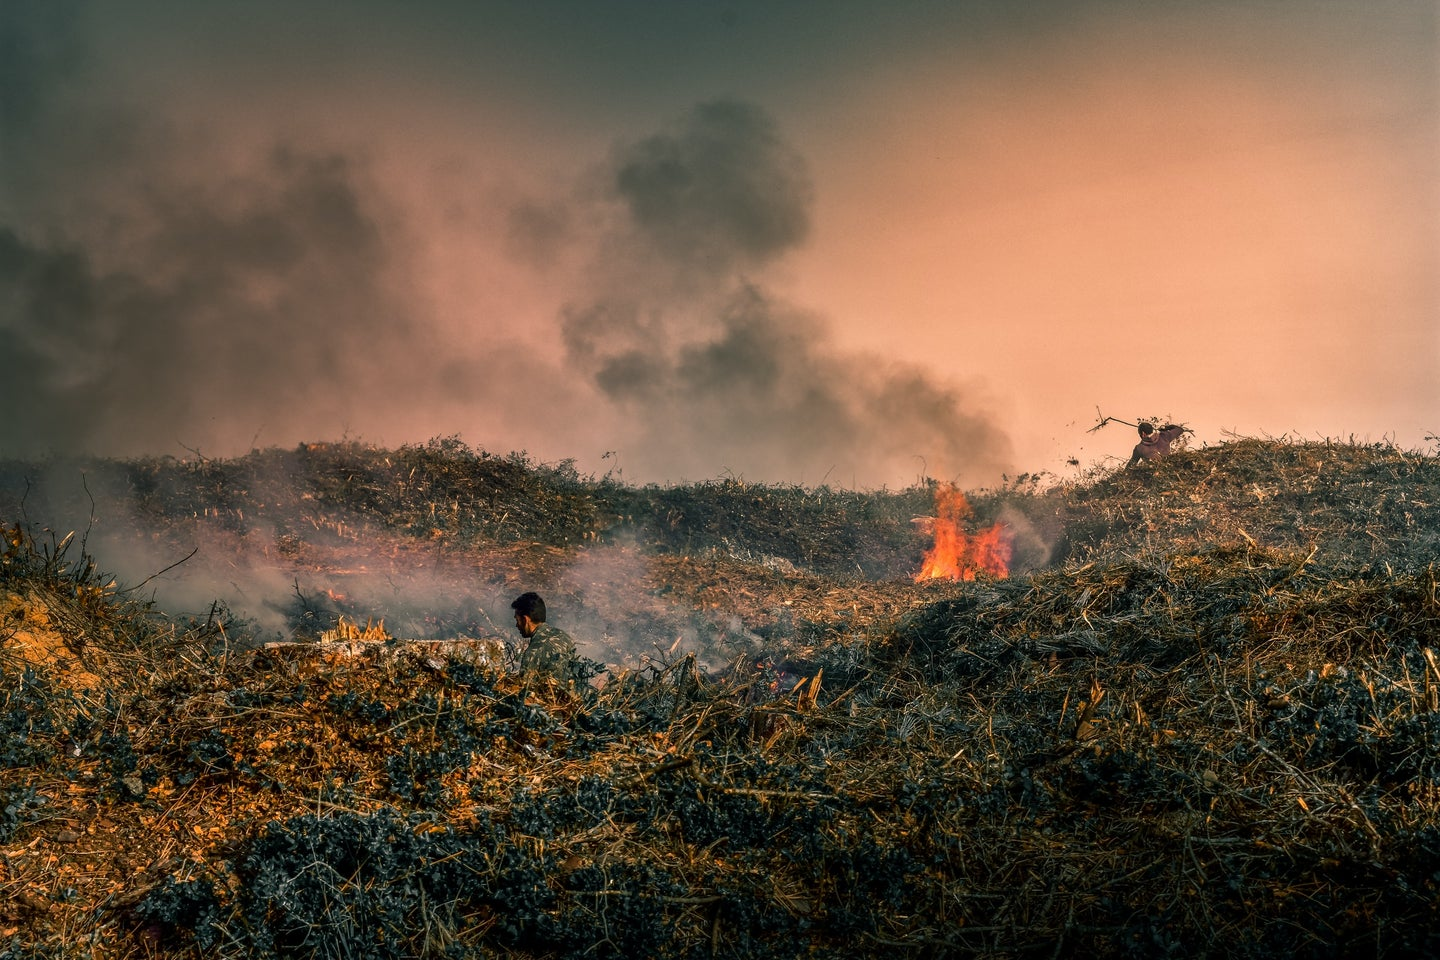 grassy area burning in a forest fire